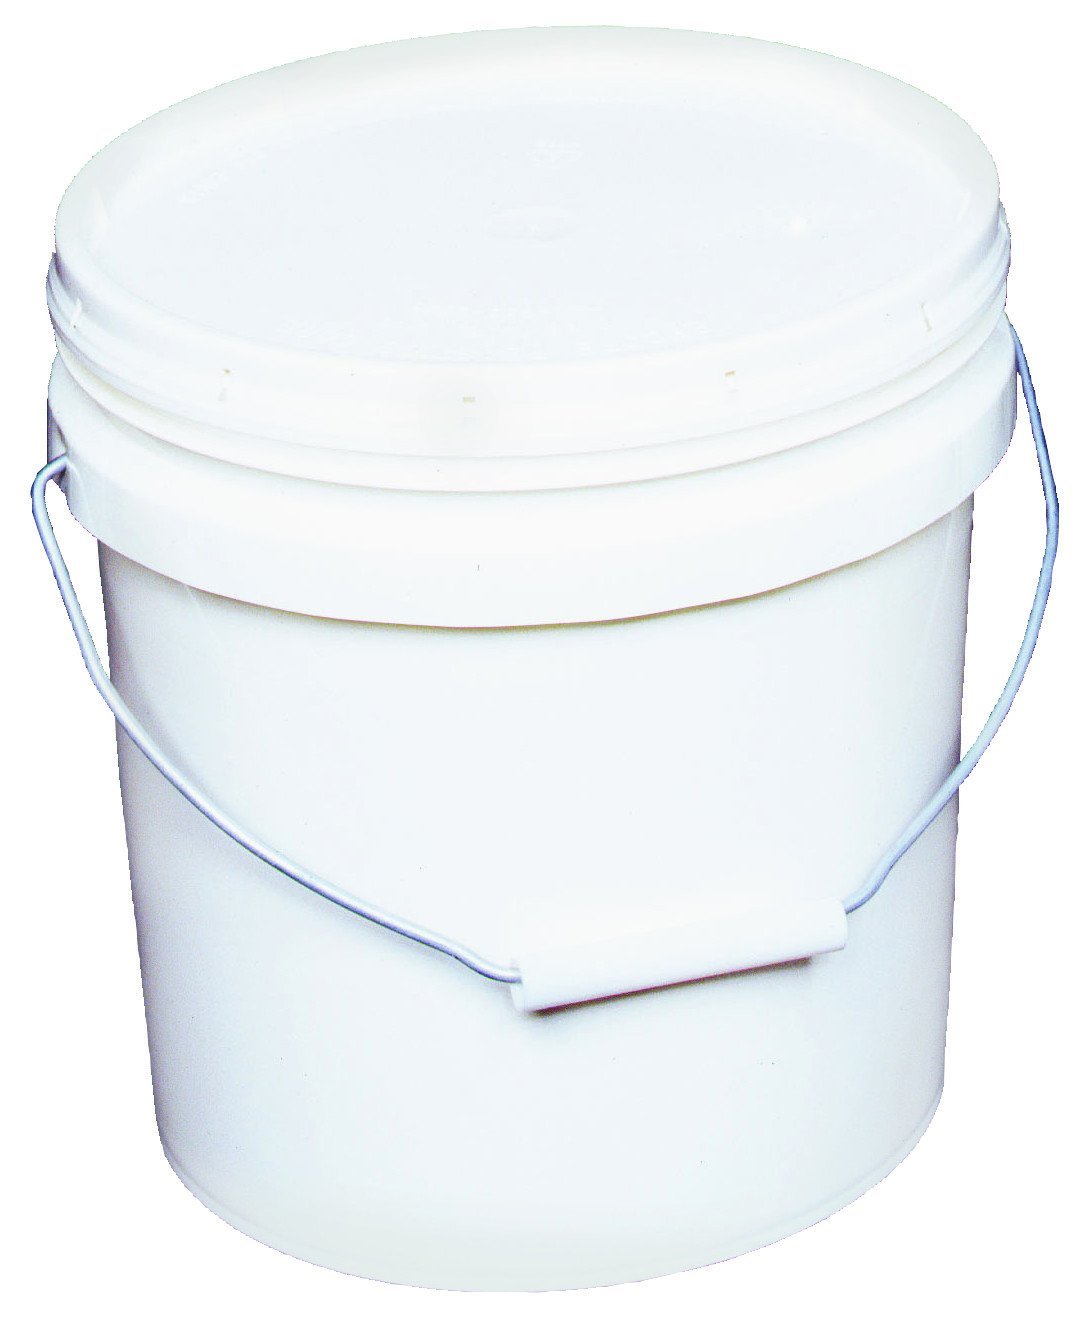 2 Gallon White Plastic Pail, available at Aboff's in Long Island and New York.